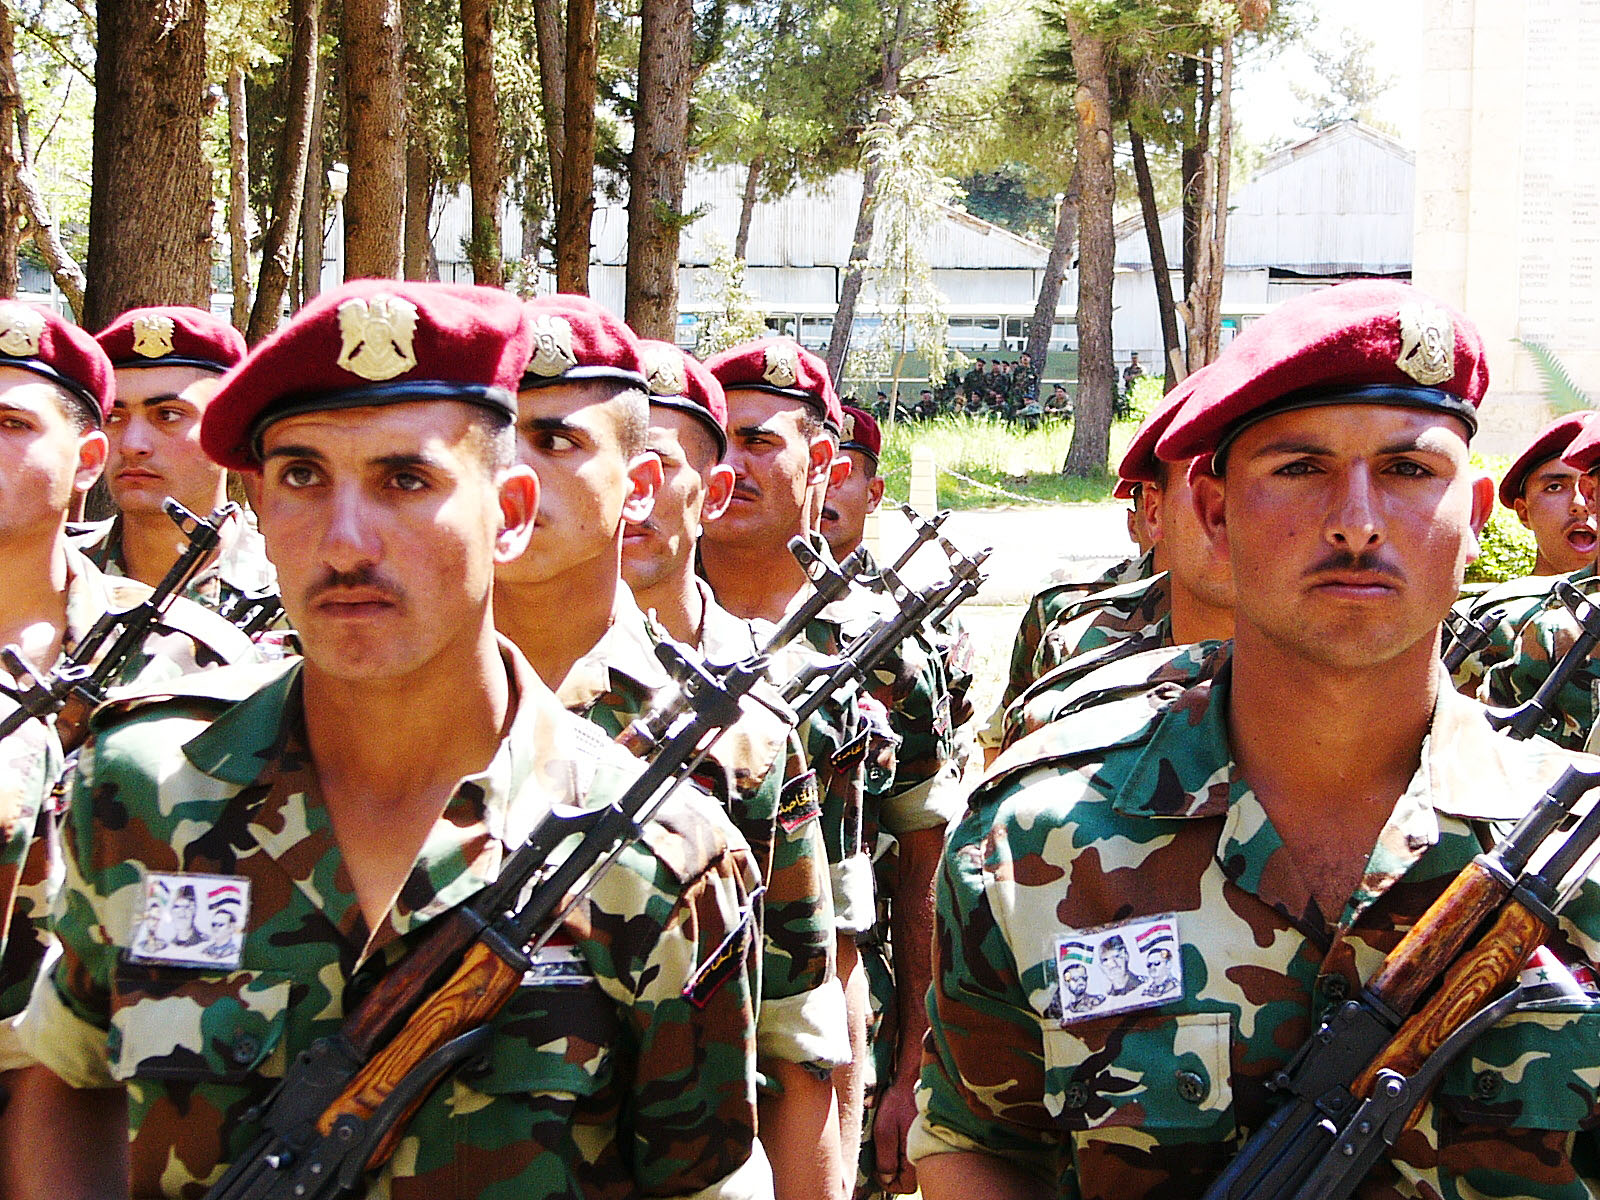 The Syrian army intervened in Lebanon's Civil War in 1976, a year after it started, and withdrew from Lebanon in April 2005. Most missing Lebanese were detained by Syrian forces during the war and disappeared in Syrian jails